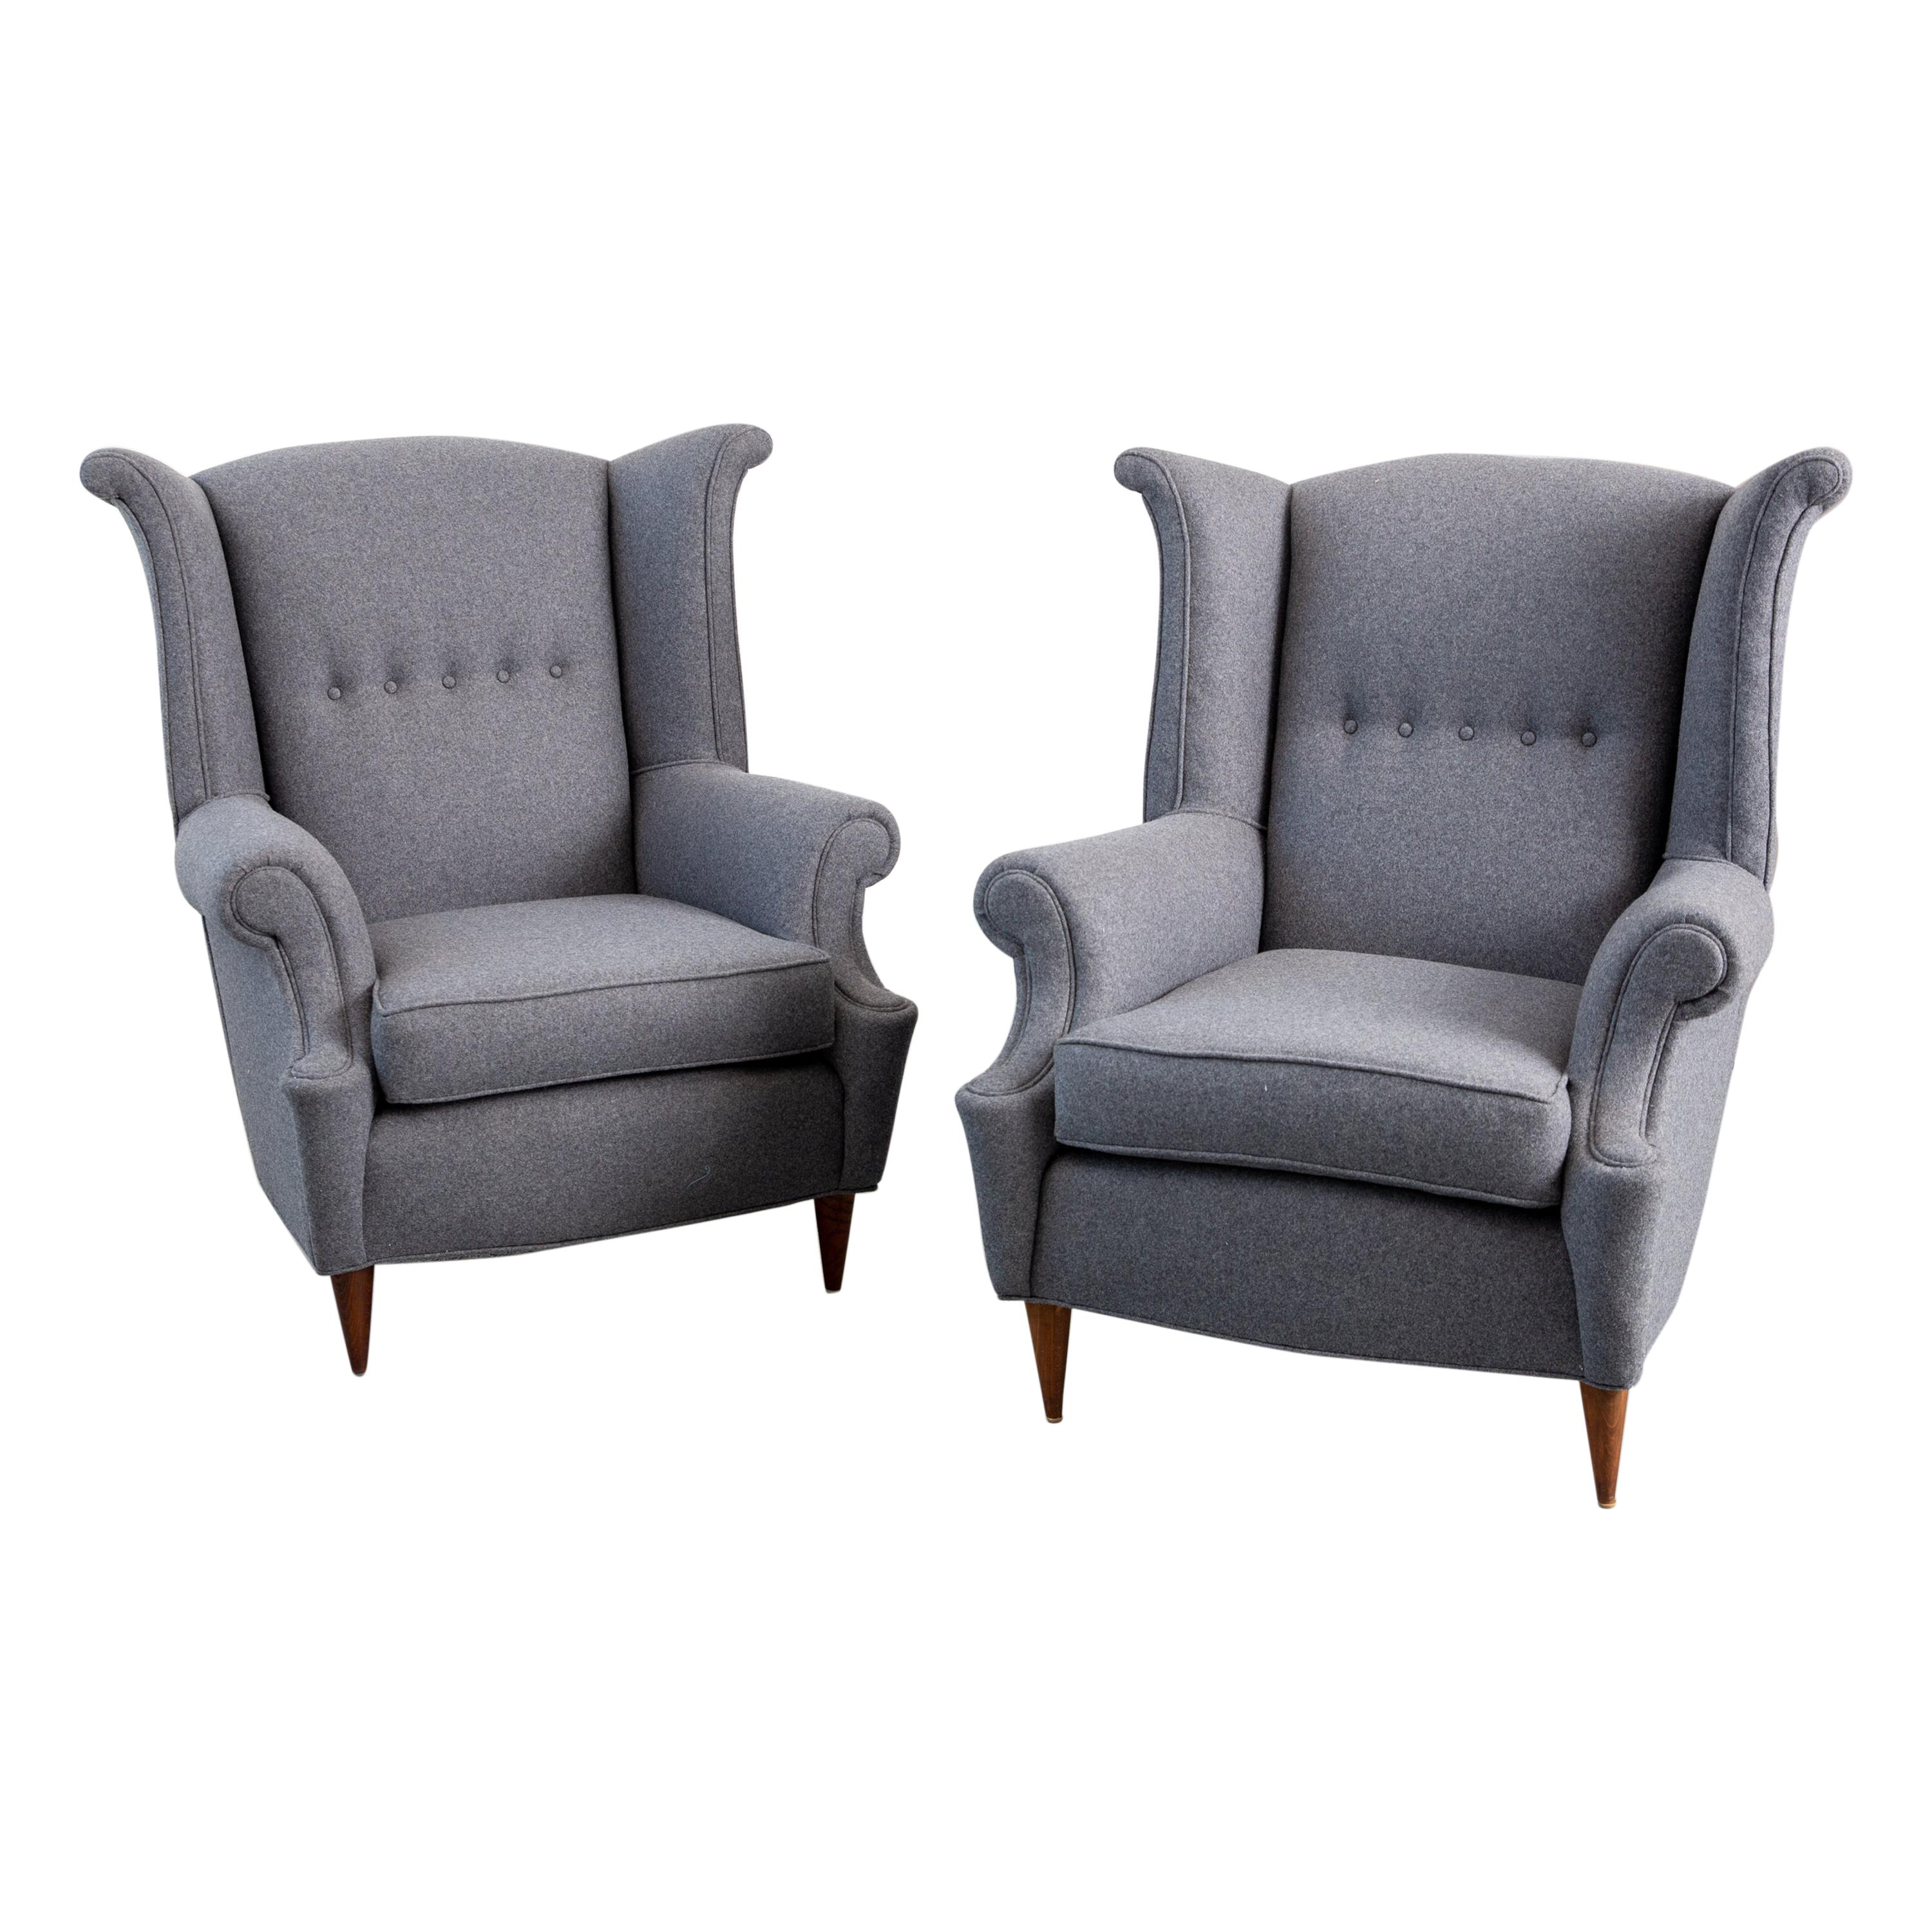 Pair of 1940s Italian Wingback Chairs